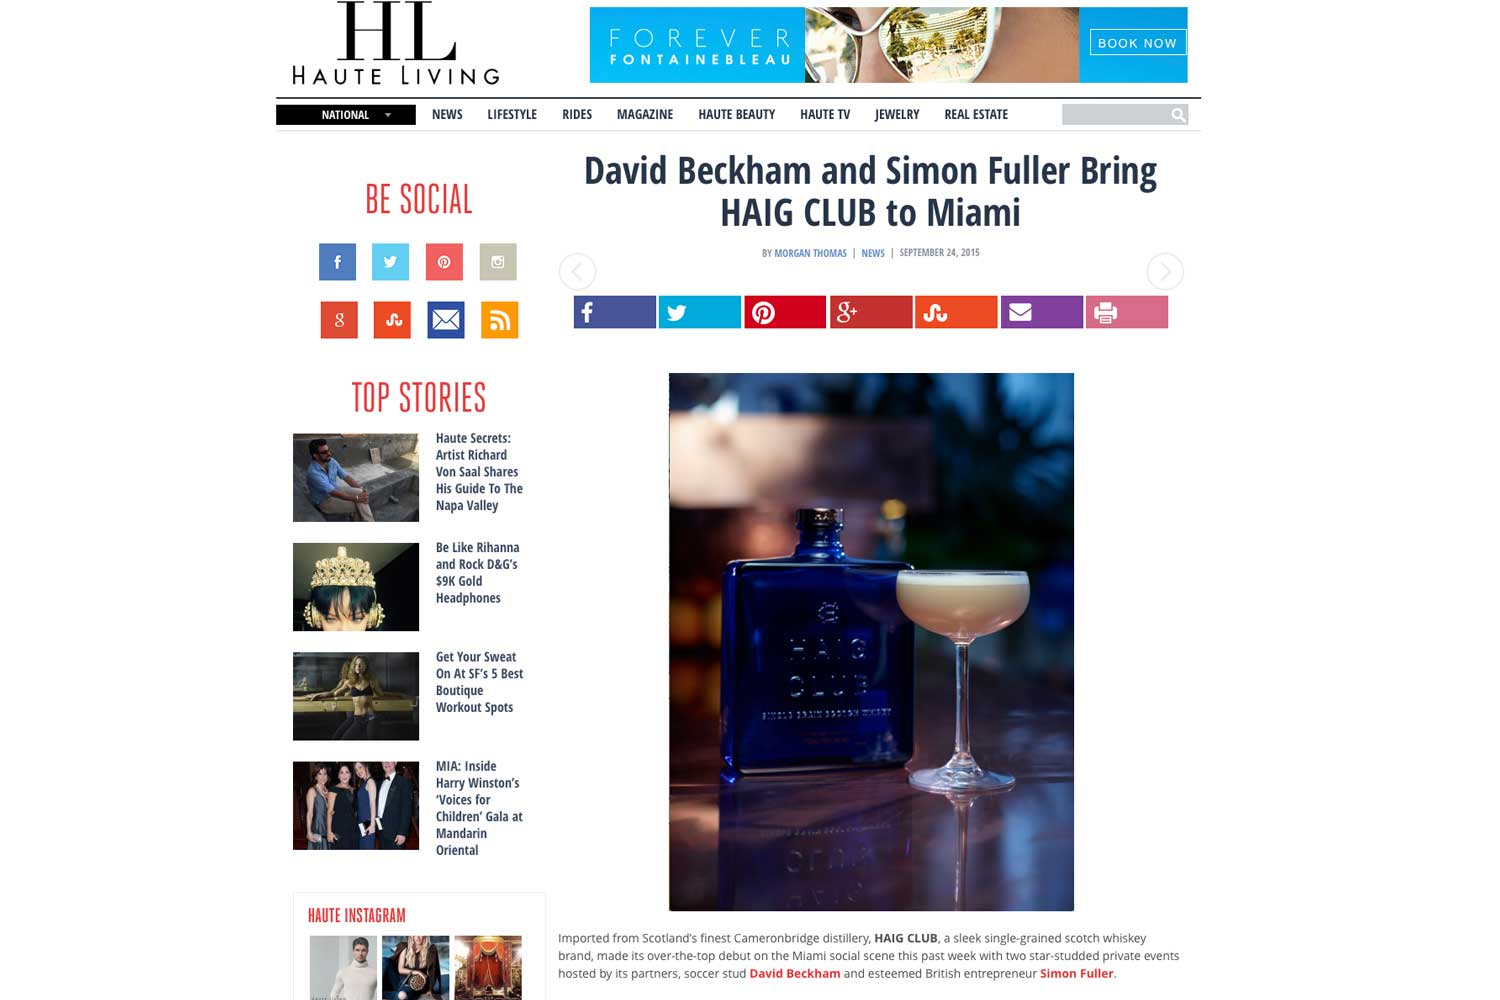 """<p><strong>Haute Living</strong><a href=""""http://hauteliving.com/2015/09/david-beckham-and-simon-fuller-bring-haig-club-to-miami/586952/"""" target=""""_blank"""">Read Article→</a></p>"""